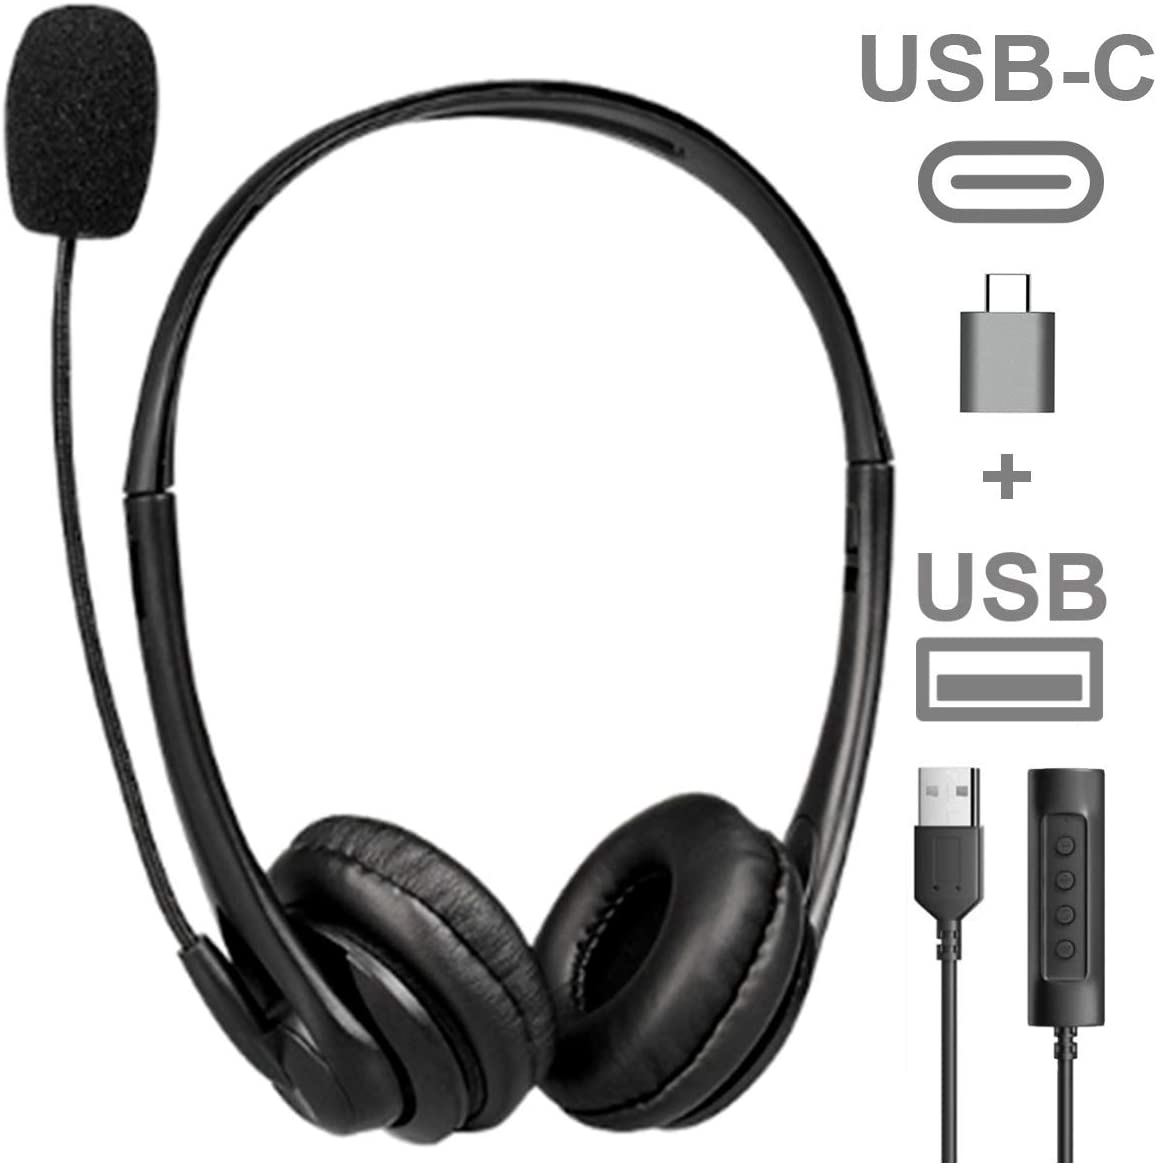 Headphones with Microphone USB and USB C Connection to Any Computer, Laptop, Mac, PC. Noise Cancelling Boom Mic for Zoom, Skype, Video Conference Headset